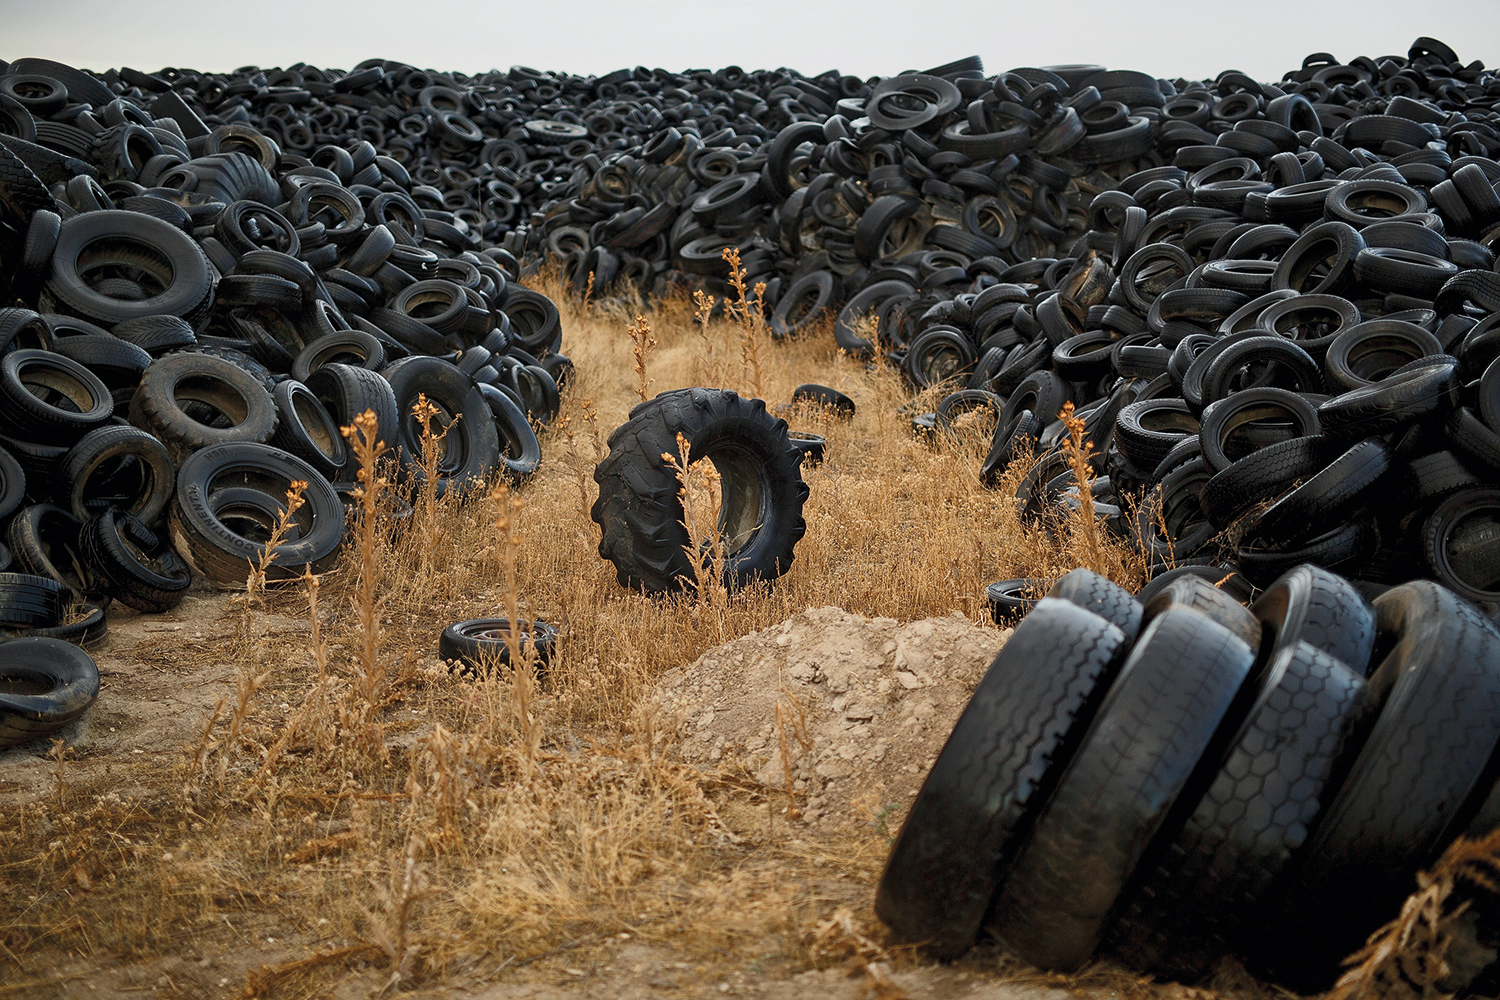 A mountain of tires in the Spanish countryside near Madrid on Sept. 24, 2014.